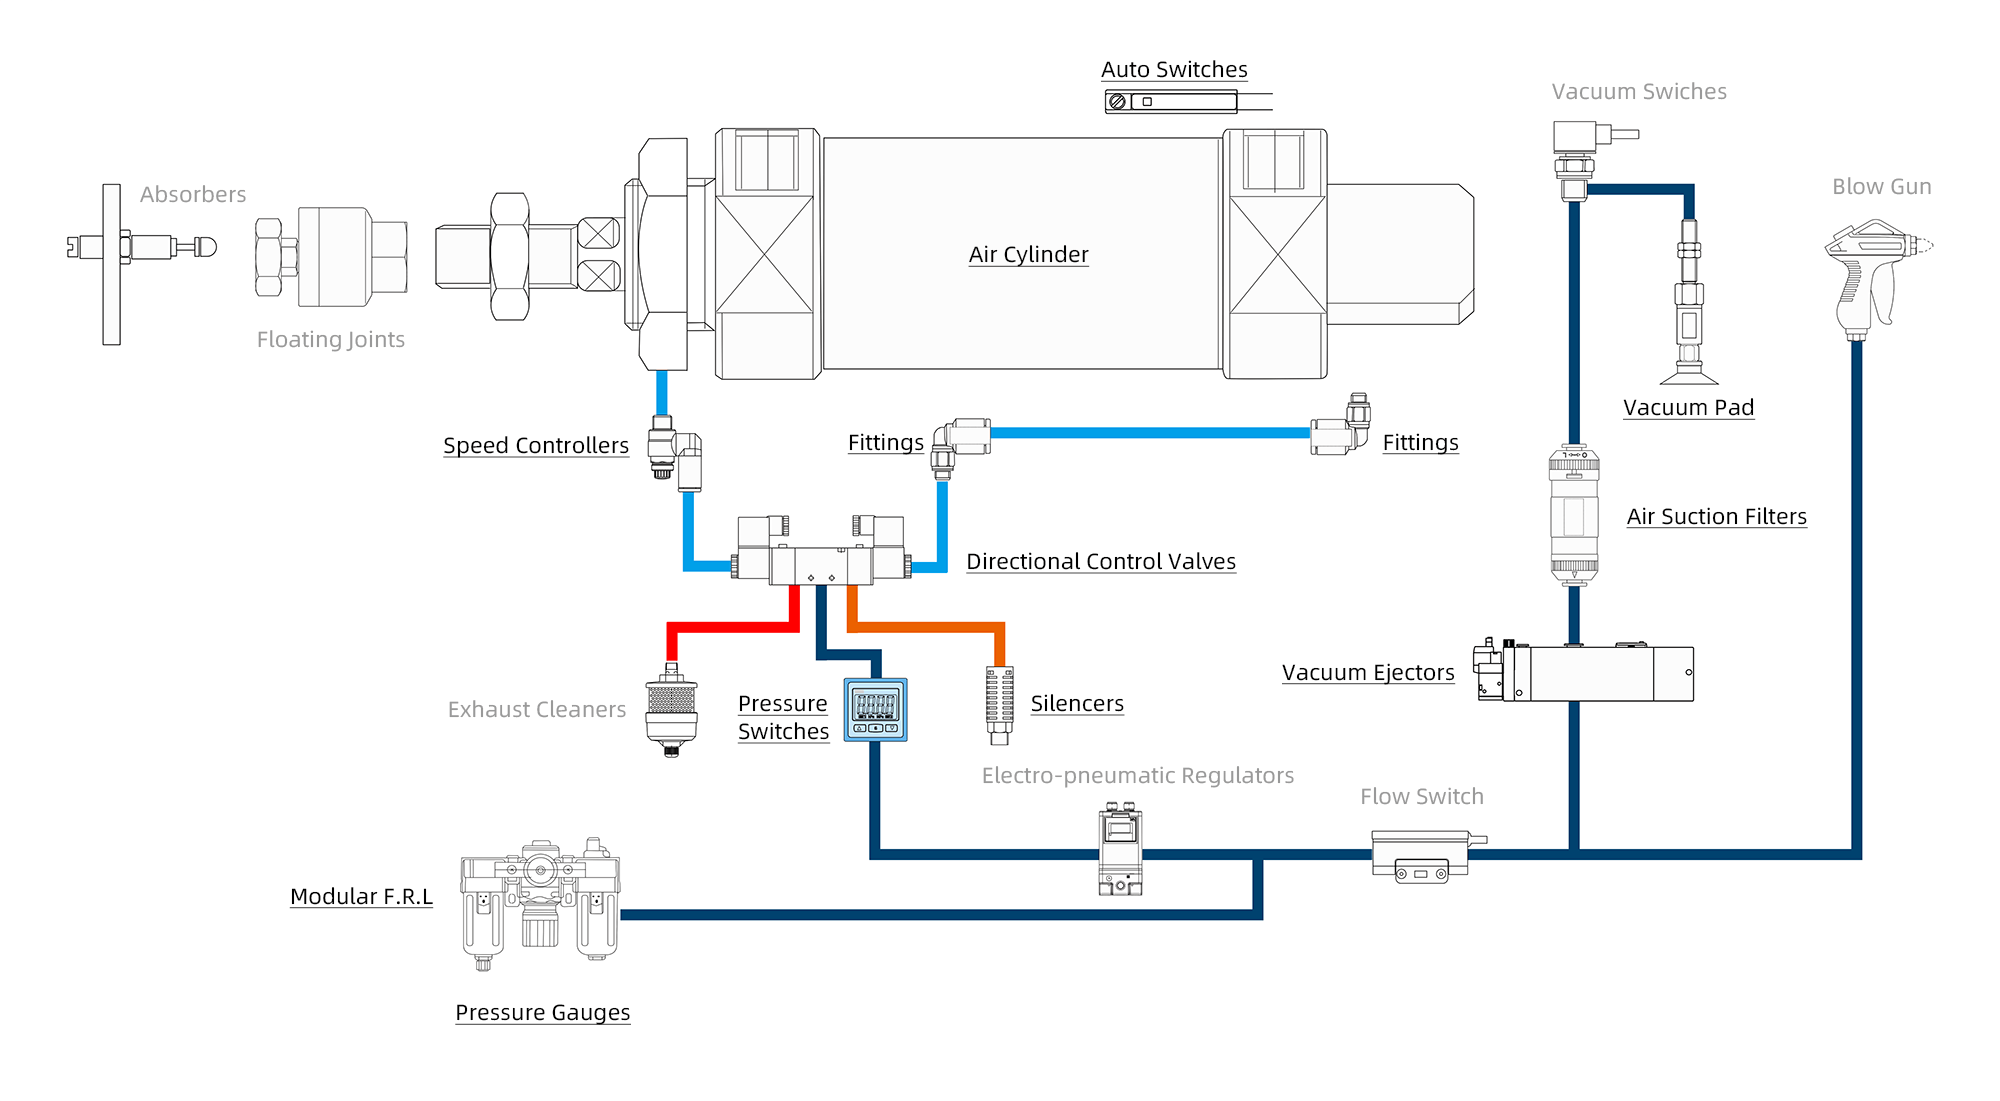 Product System Diagram